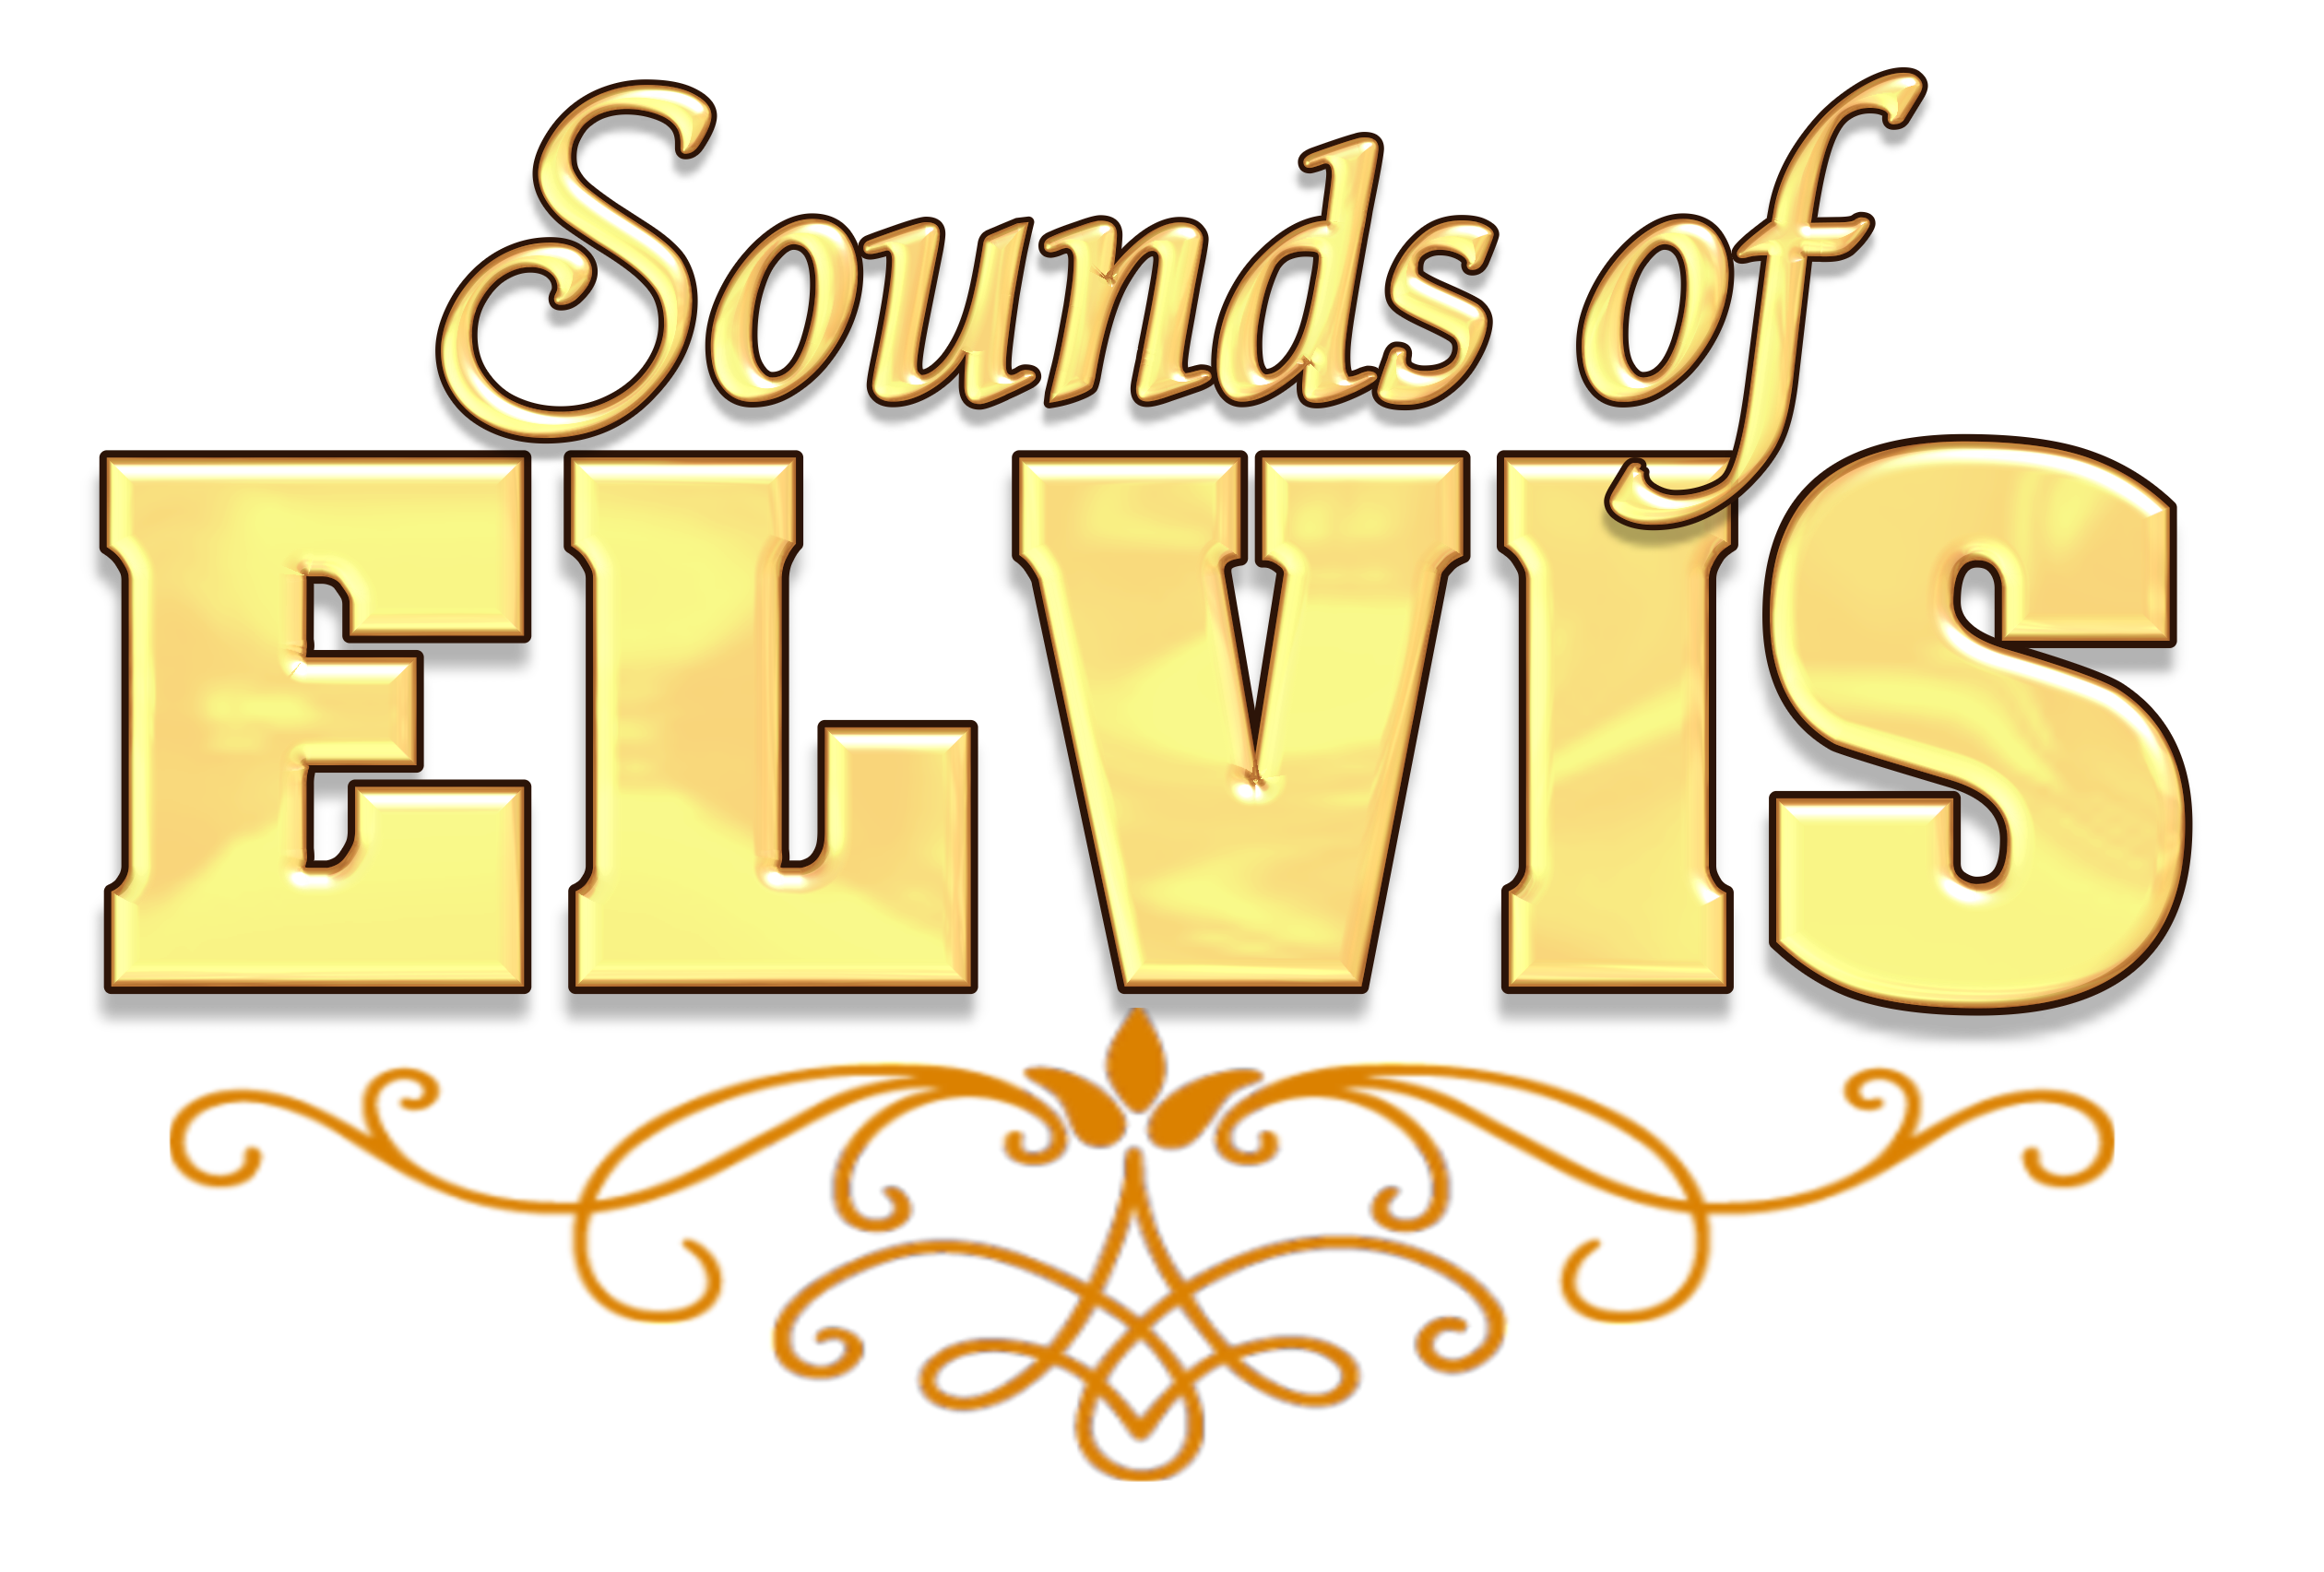 The Sound of Elvis